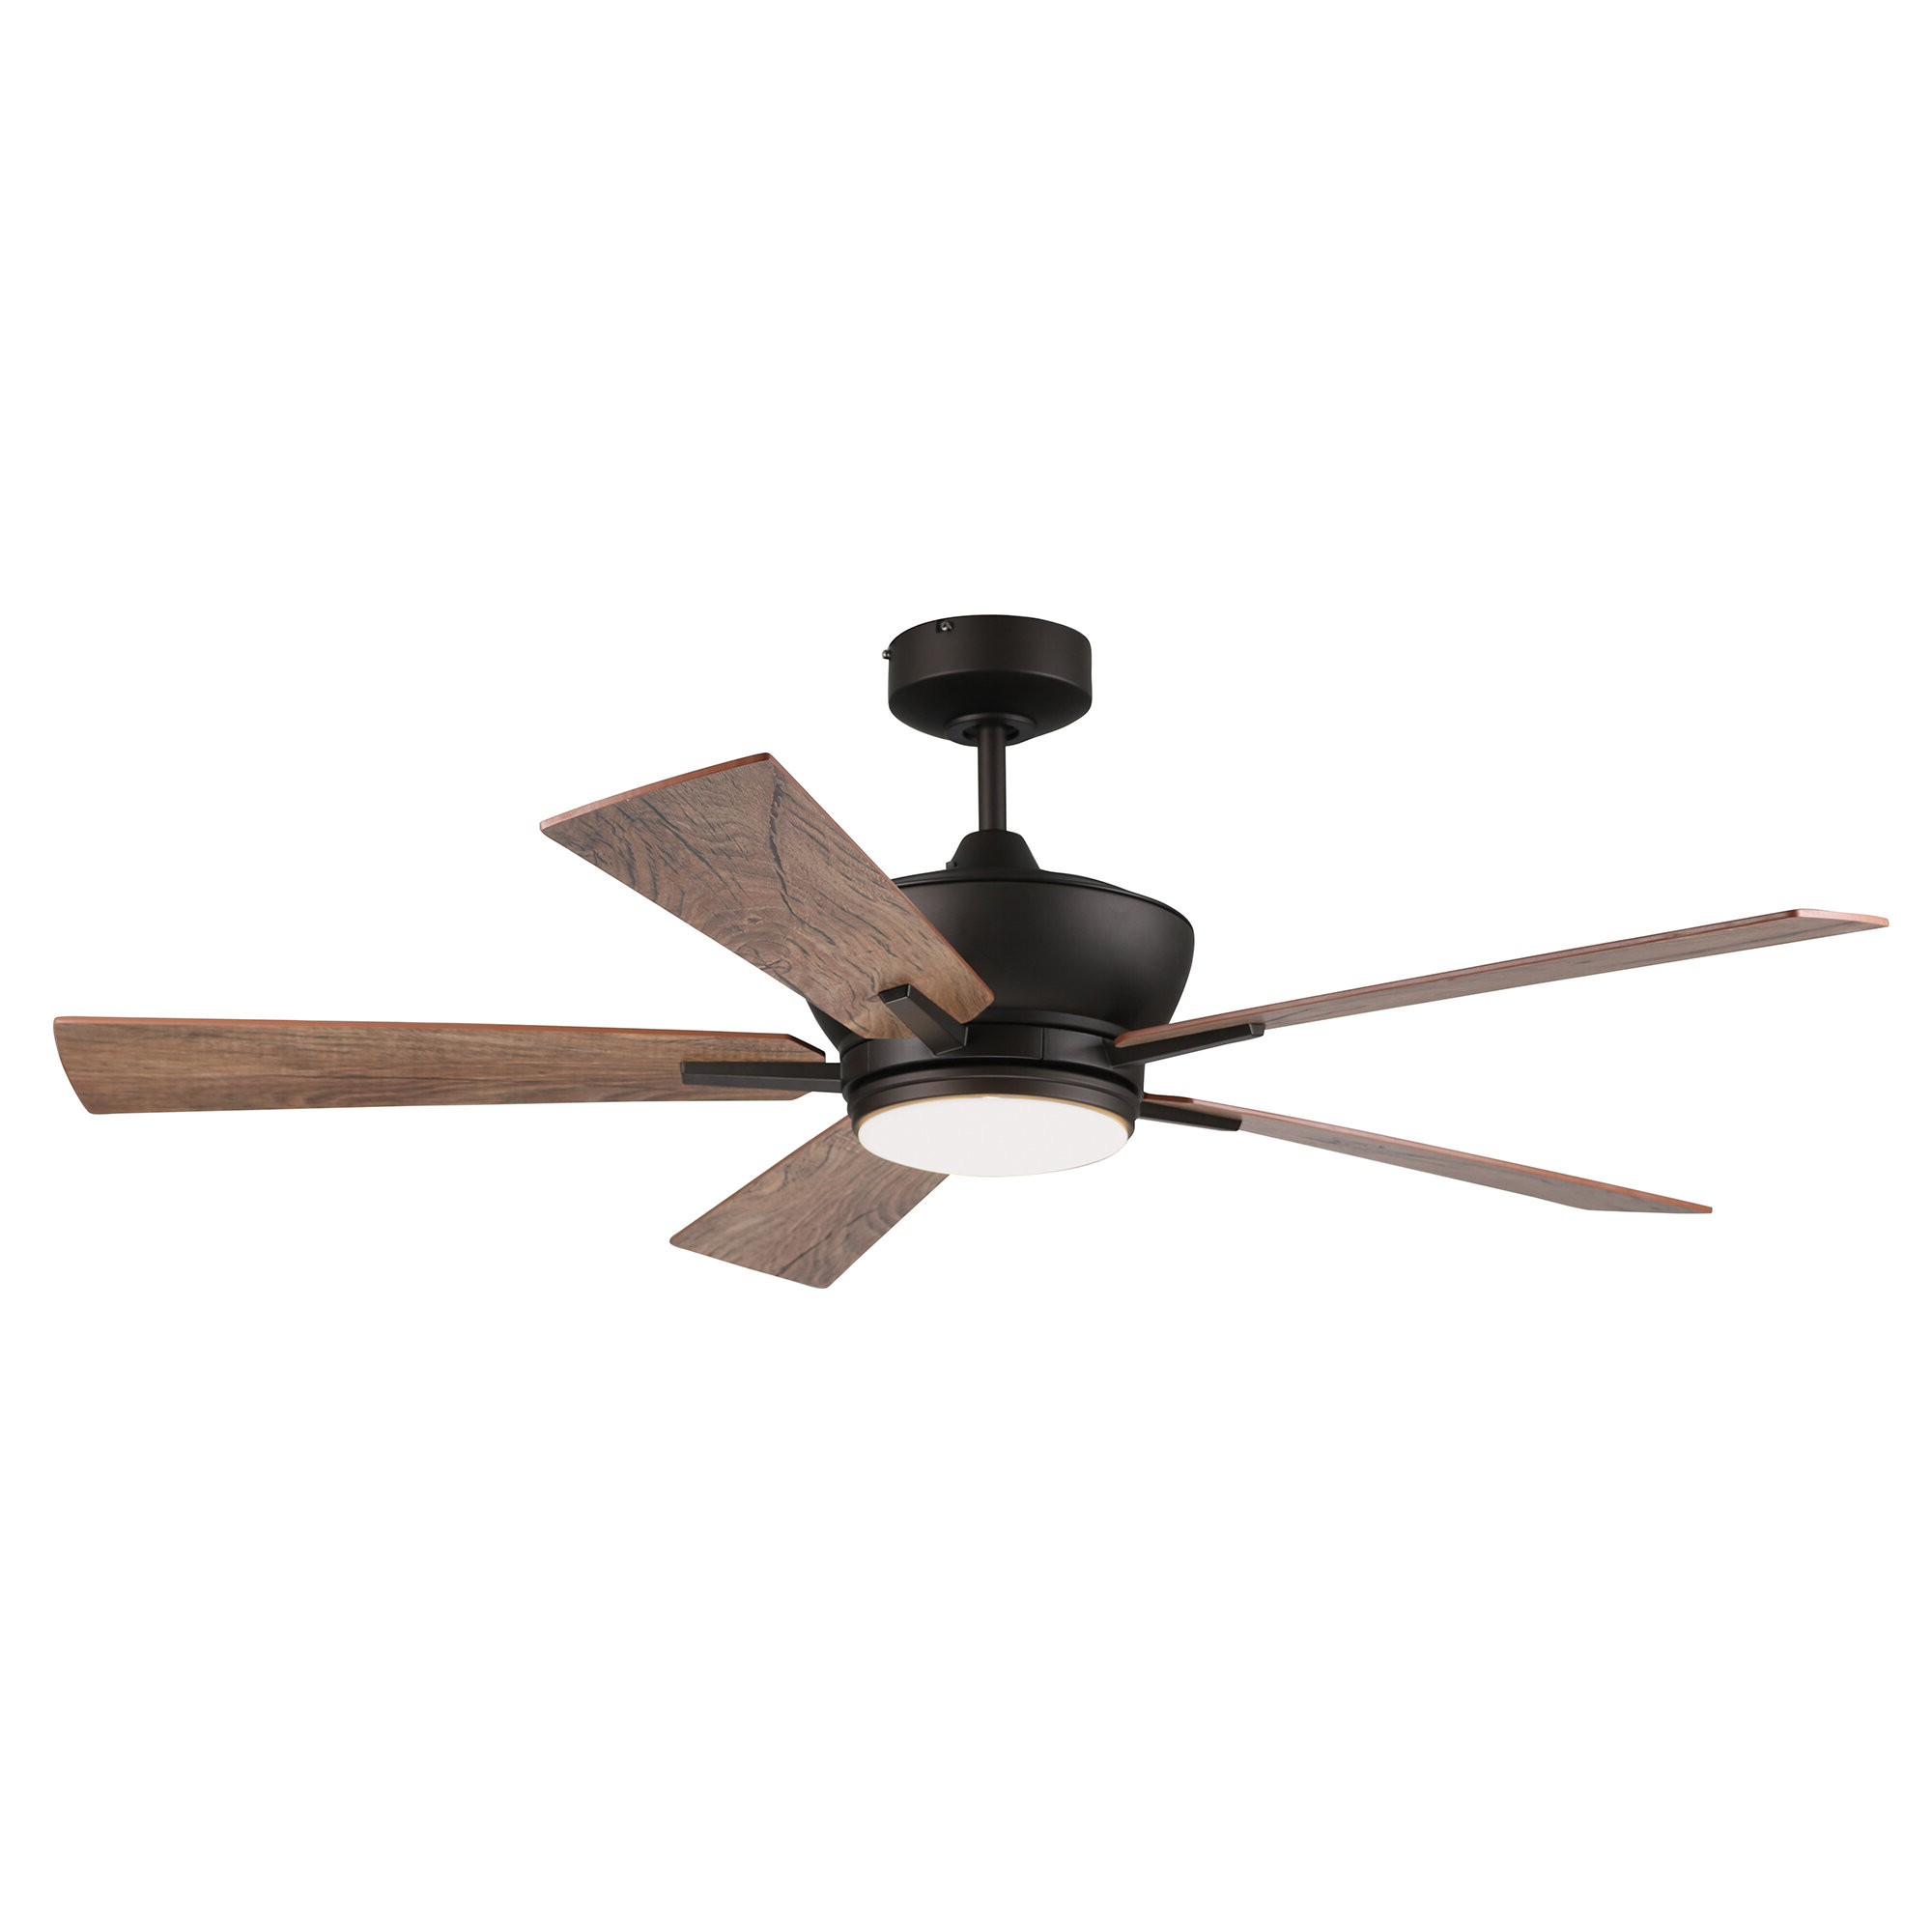 "Latest 52"" Georgetown Tri Mount 5 Blade Ceiling Fan With Remote, Light Kit Included Intended For Ravenna 5 Blade Ceiling Fans (View 7 of 20)"